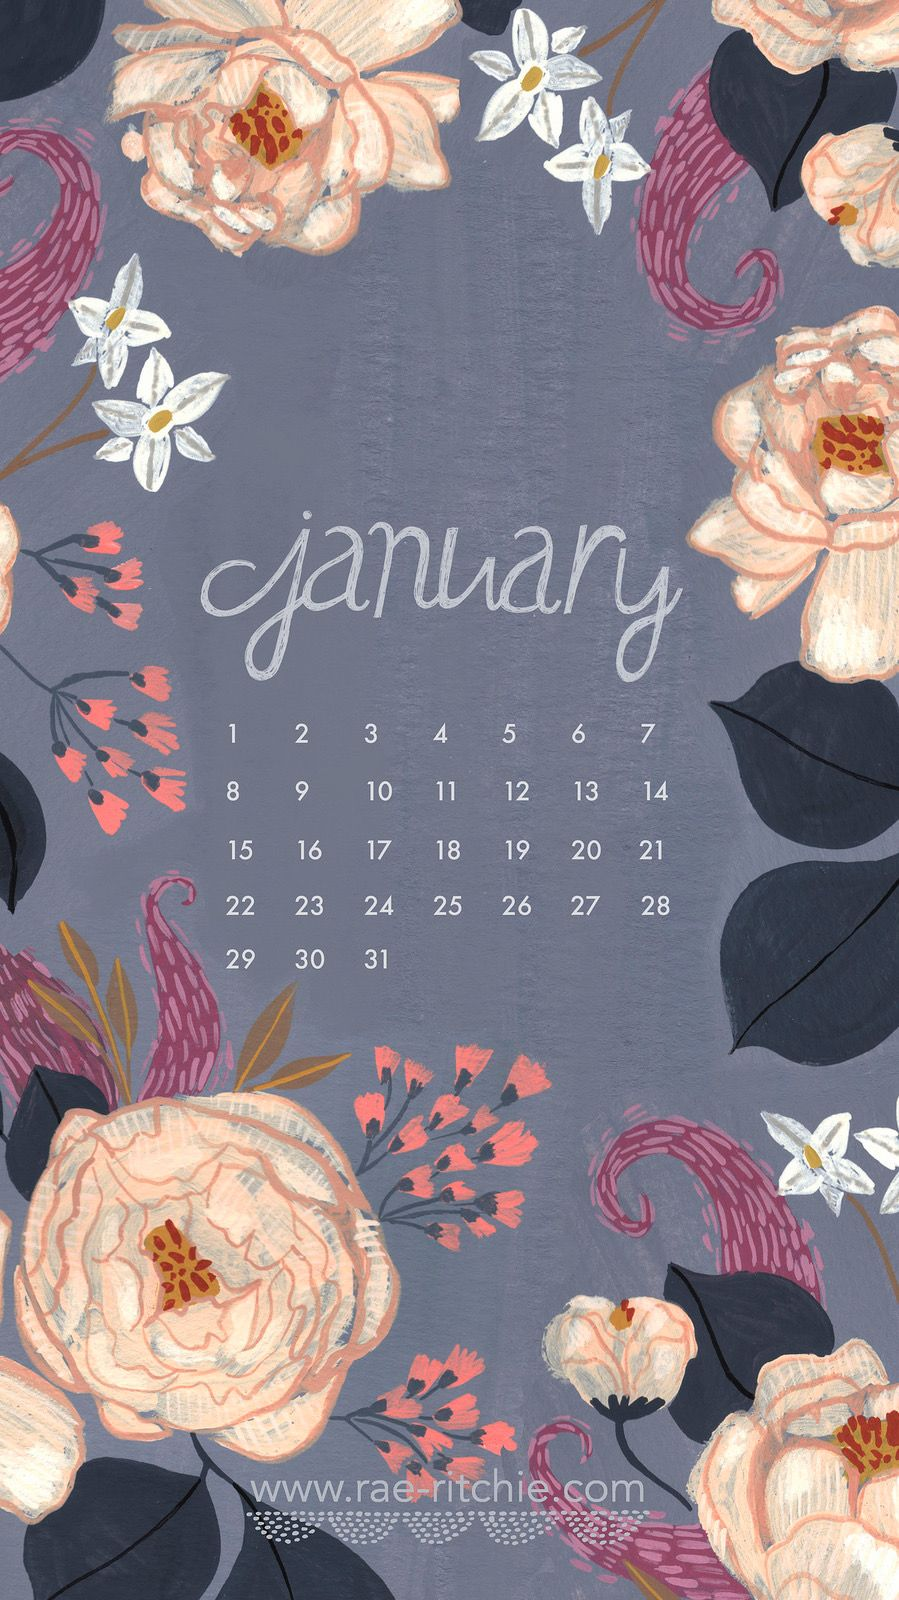 January calendar wallpaper | Imagery | Calendar wallpaper, January wallpaper, January calendar